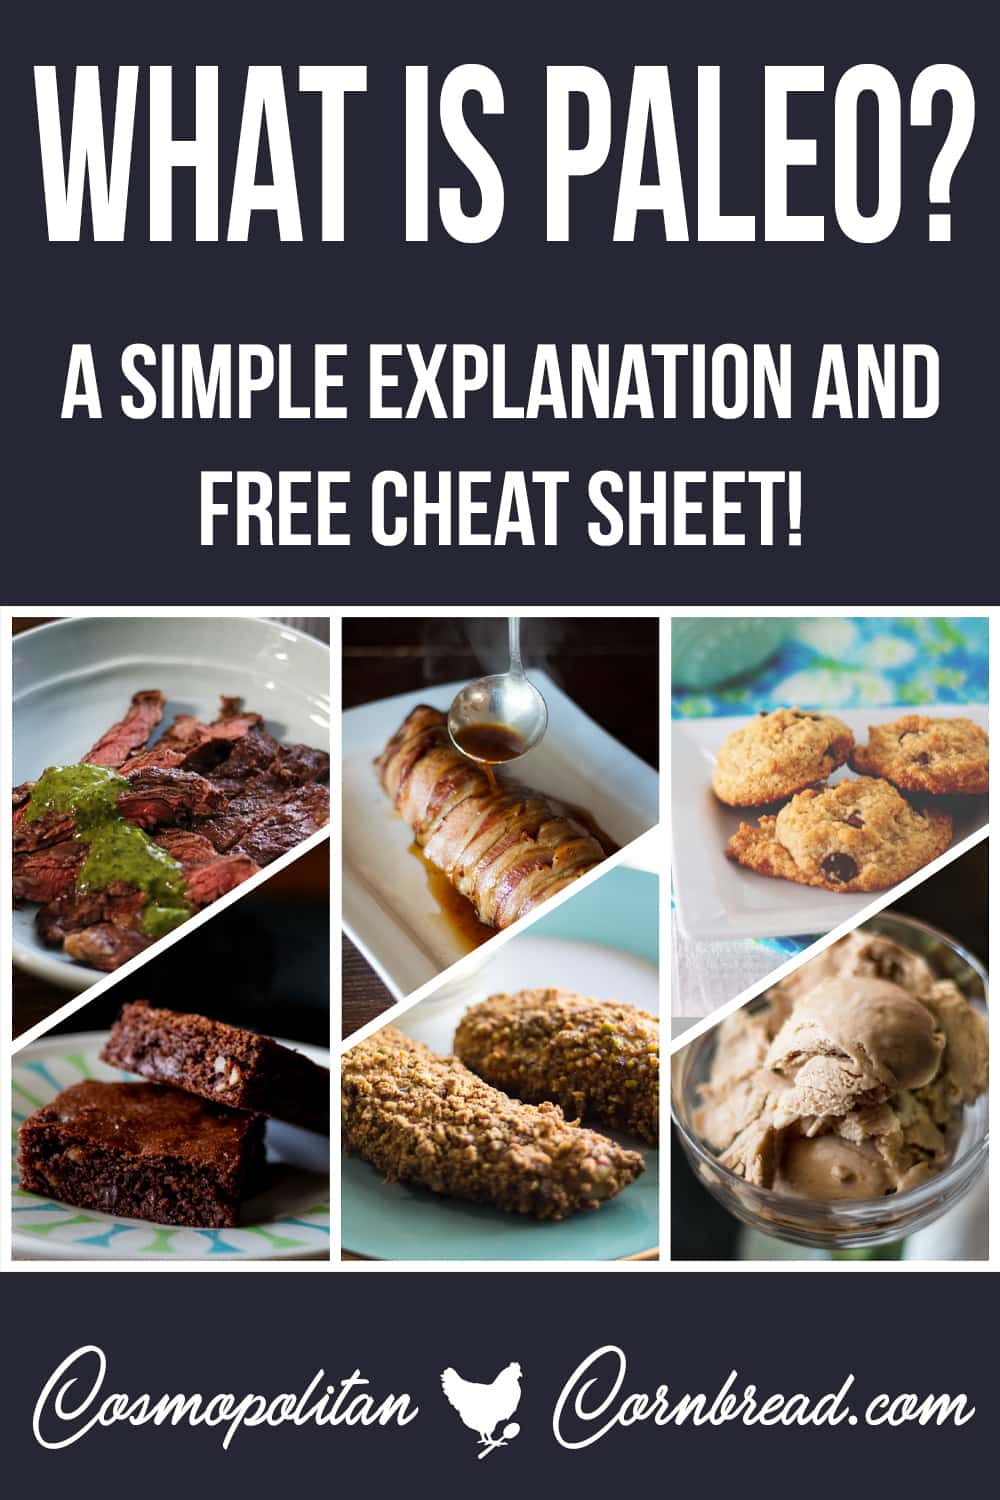 """What is the Paleo Diet? Get a simple explanation as well as a free printable cheat sheet of """"What is Paleo?"""" from Cosmopolitan Cornbread. #paleo #lowcarb #glutenfree"""